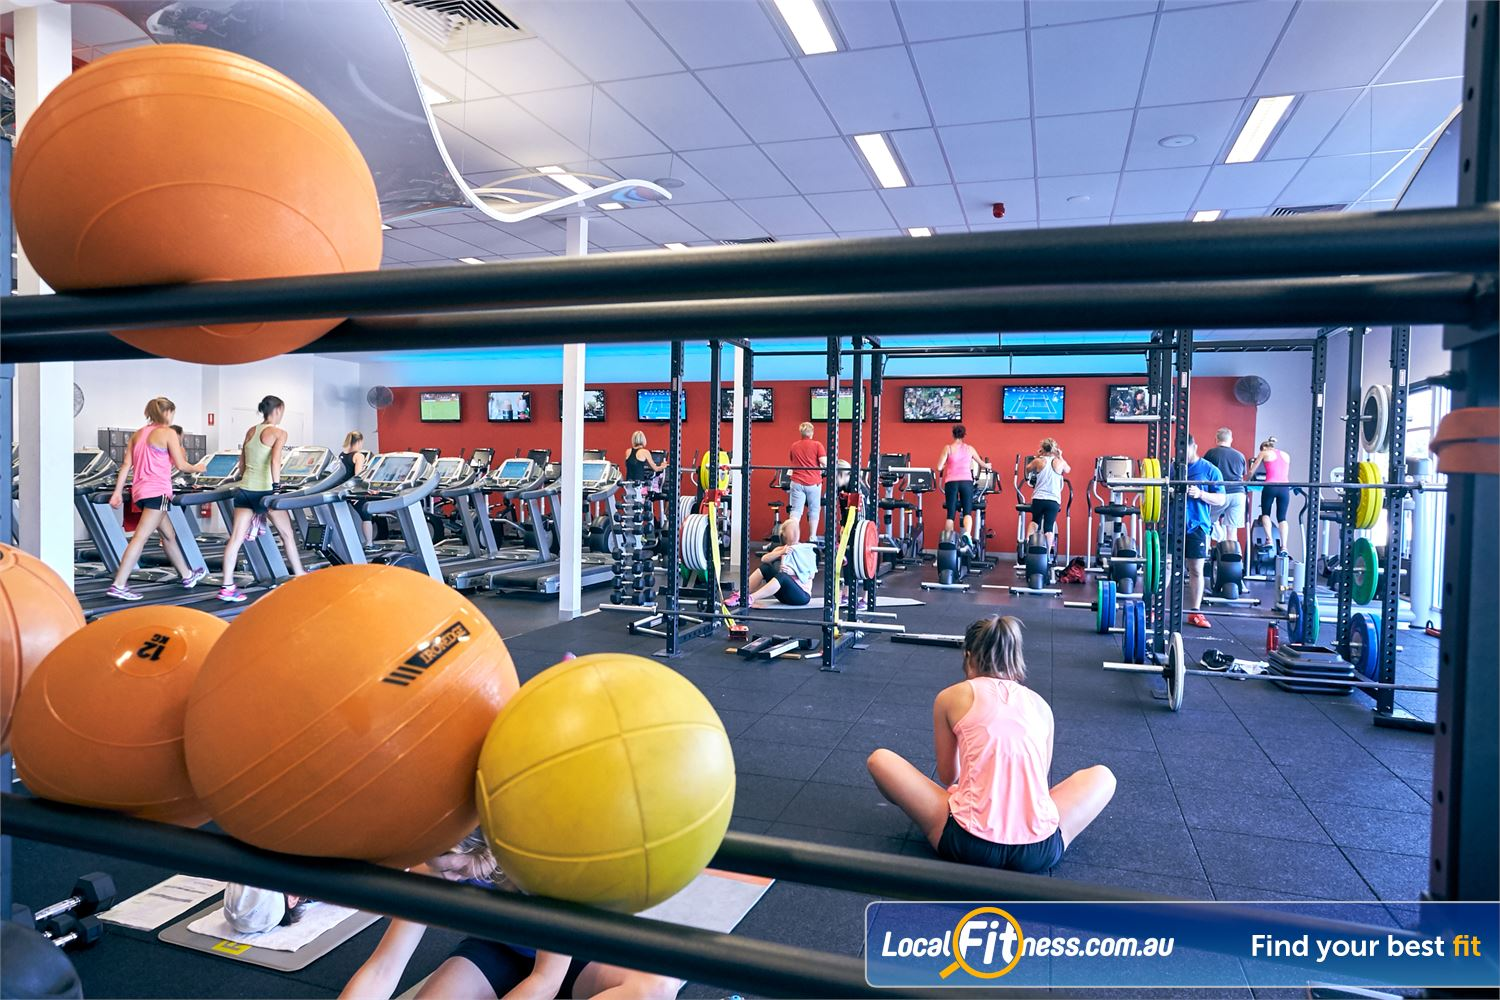 Goodlife Health Clubs Cross Roads Westbourne Park Get 24/7 gym access to our functional training zone.